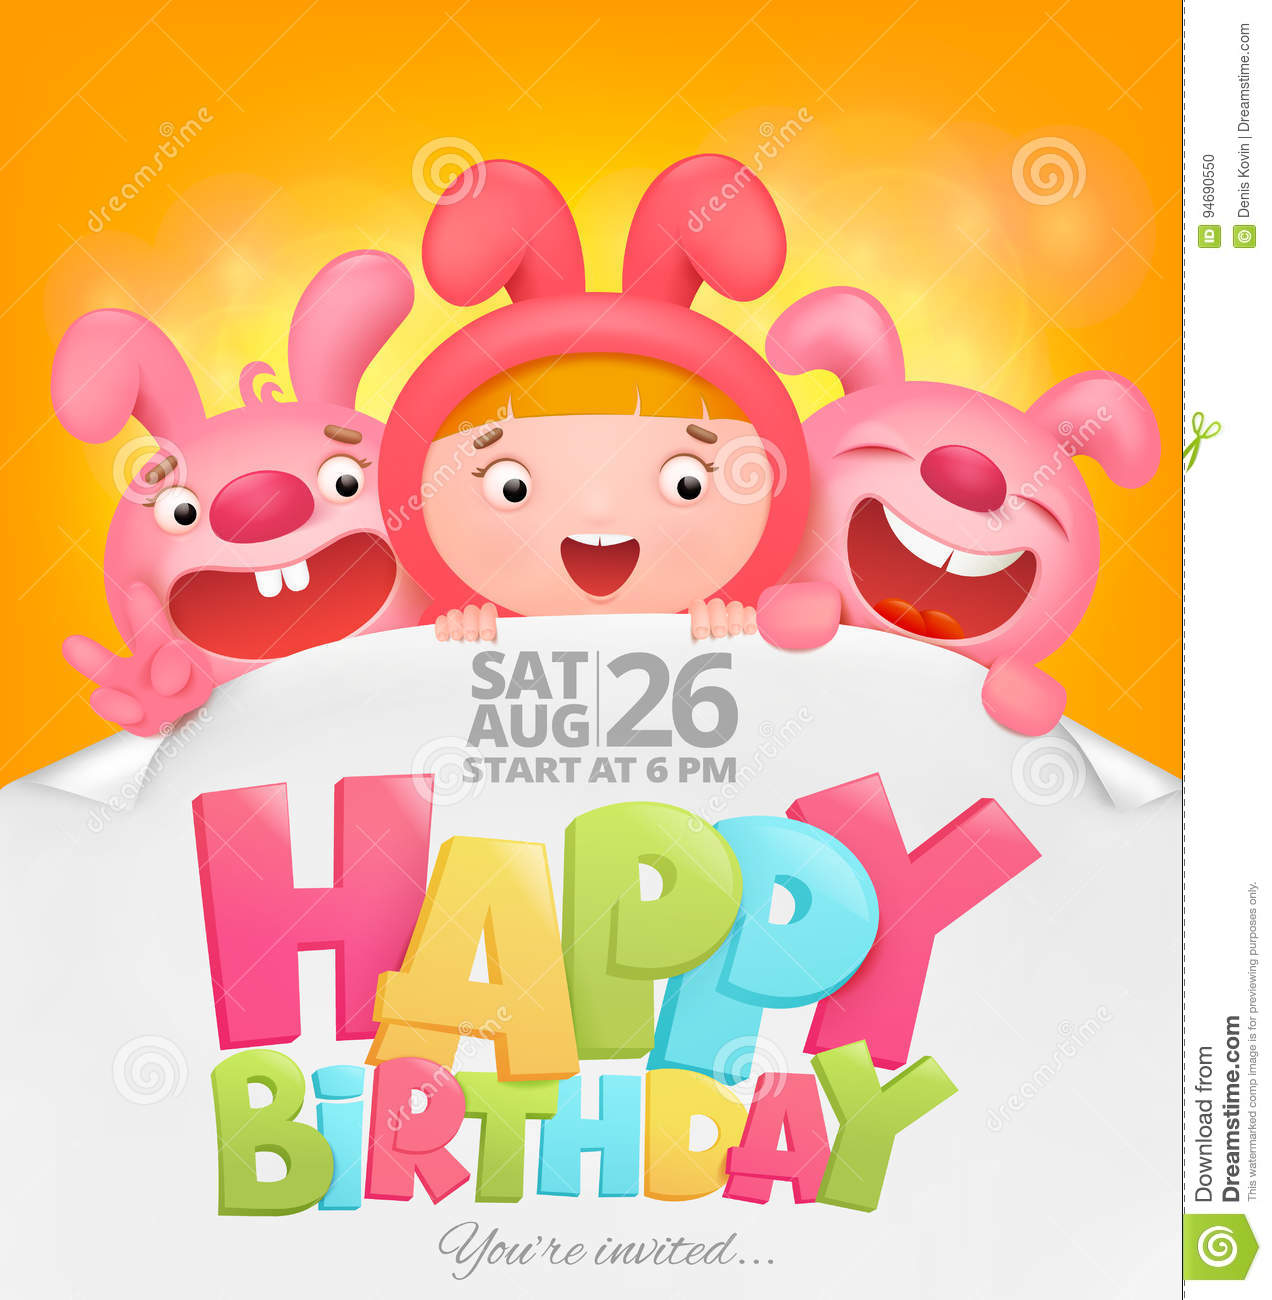 Happy Birthday Invitation Card With Girl In Pink Bunny